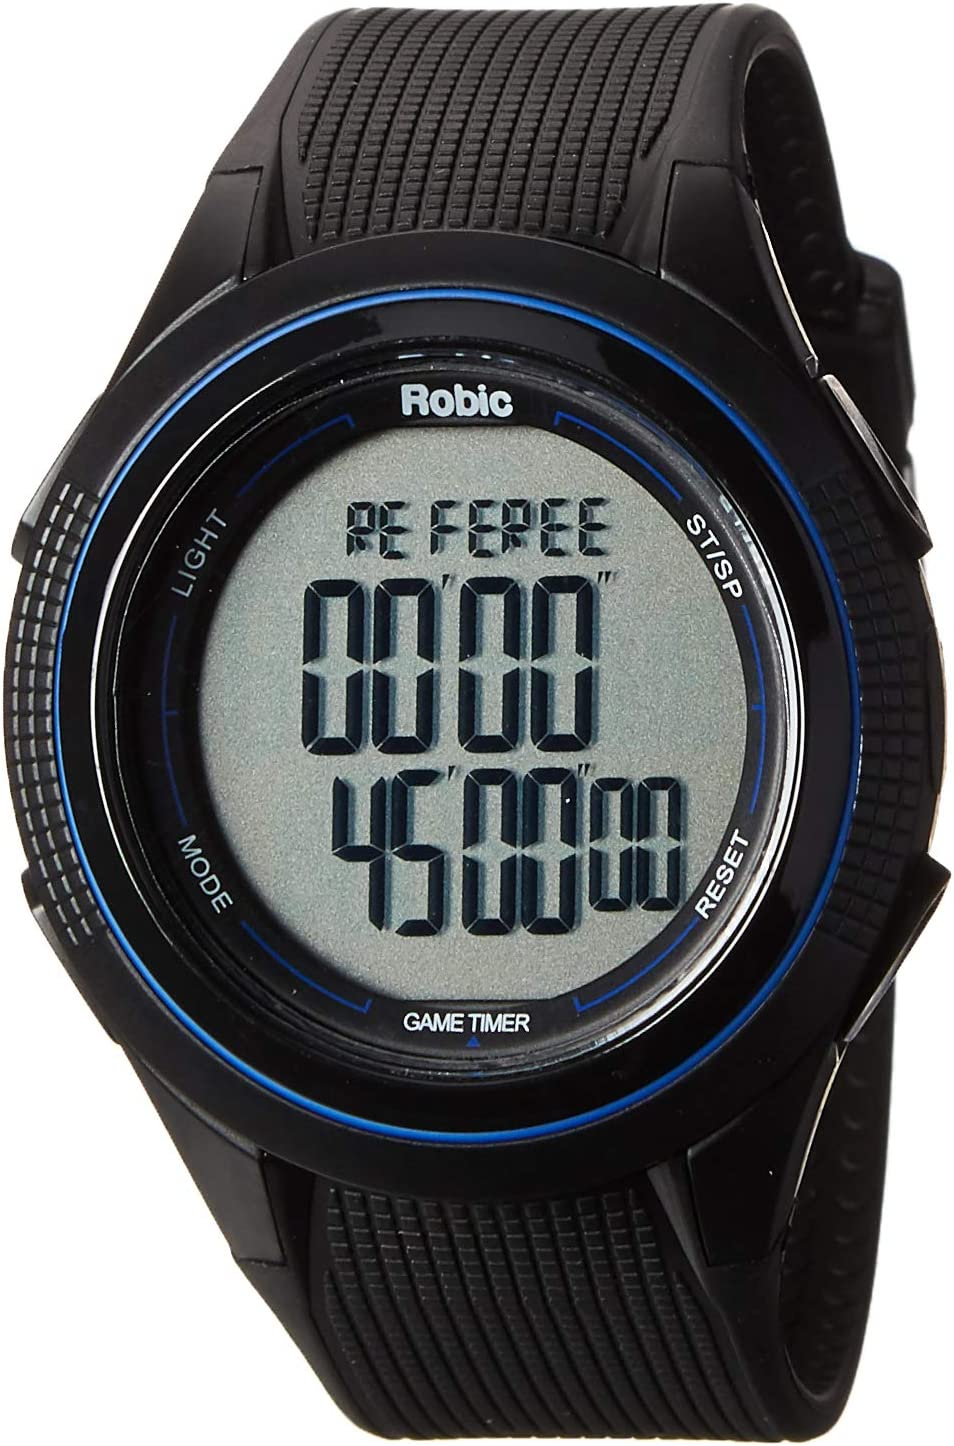 Robic 591-48319 SC-591 Referees Watch